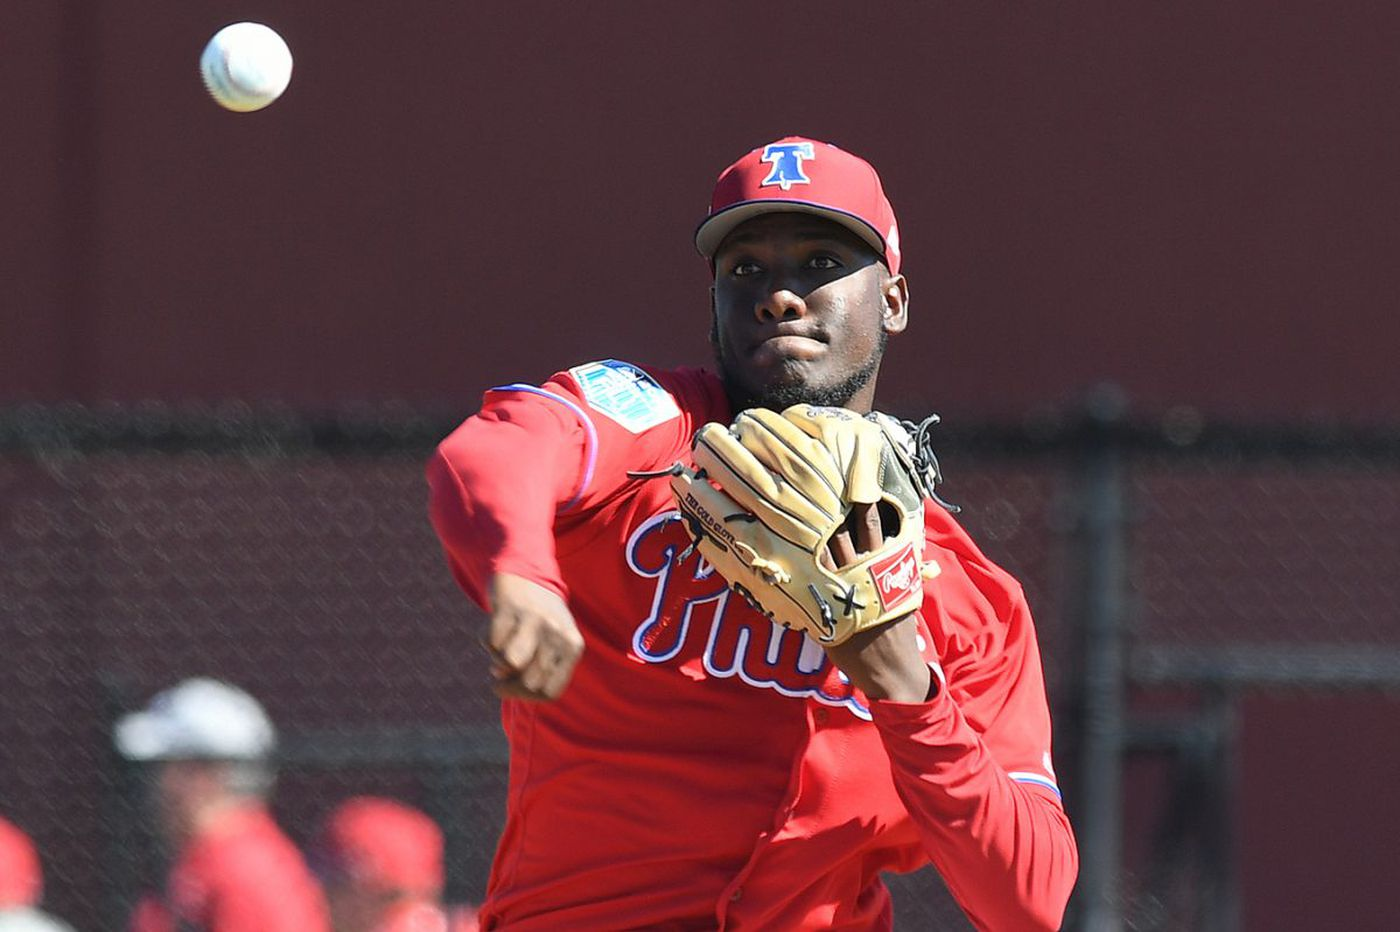 Phillies prospect Enyel De Los Santos is another arm to hope upon at spring training